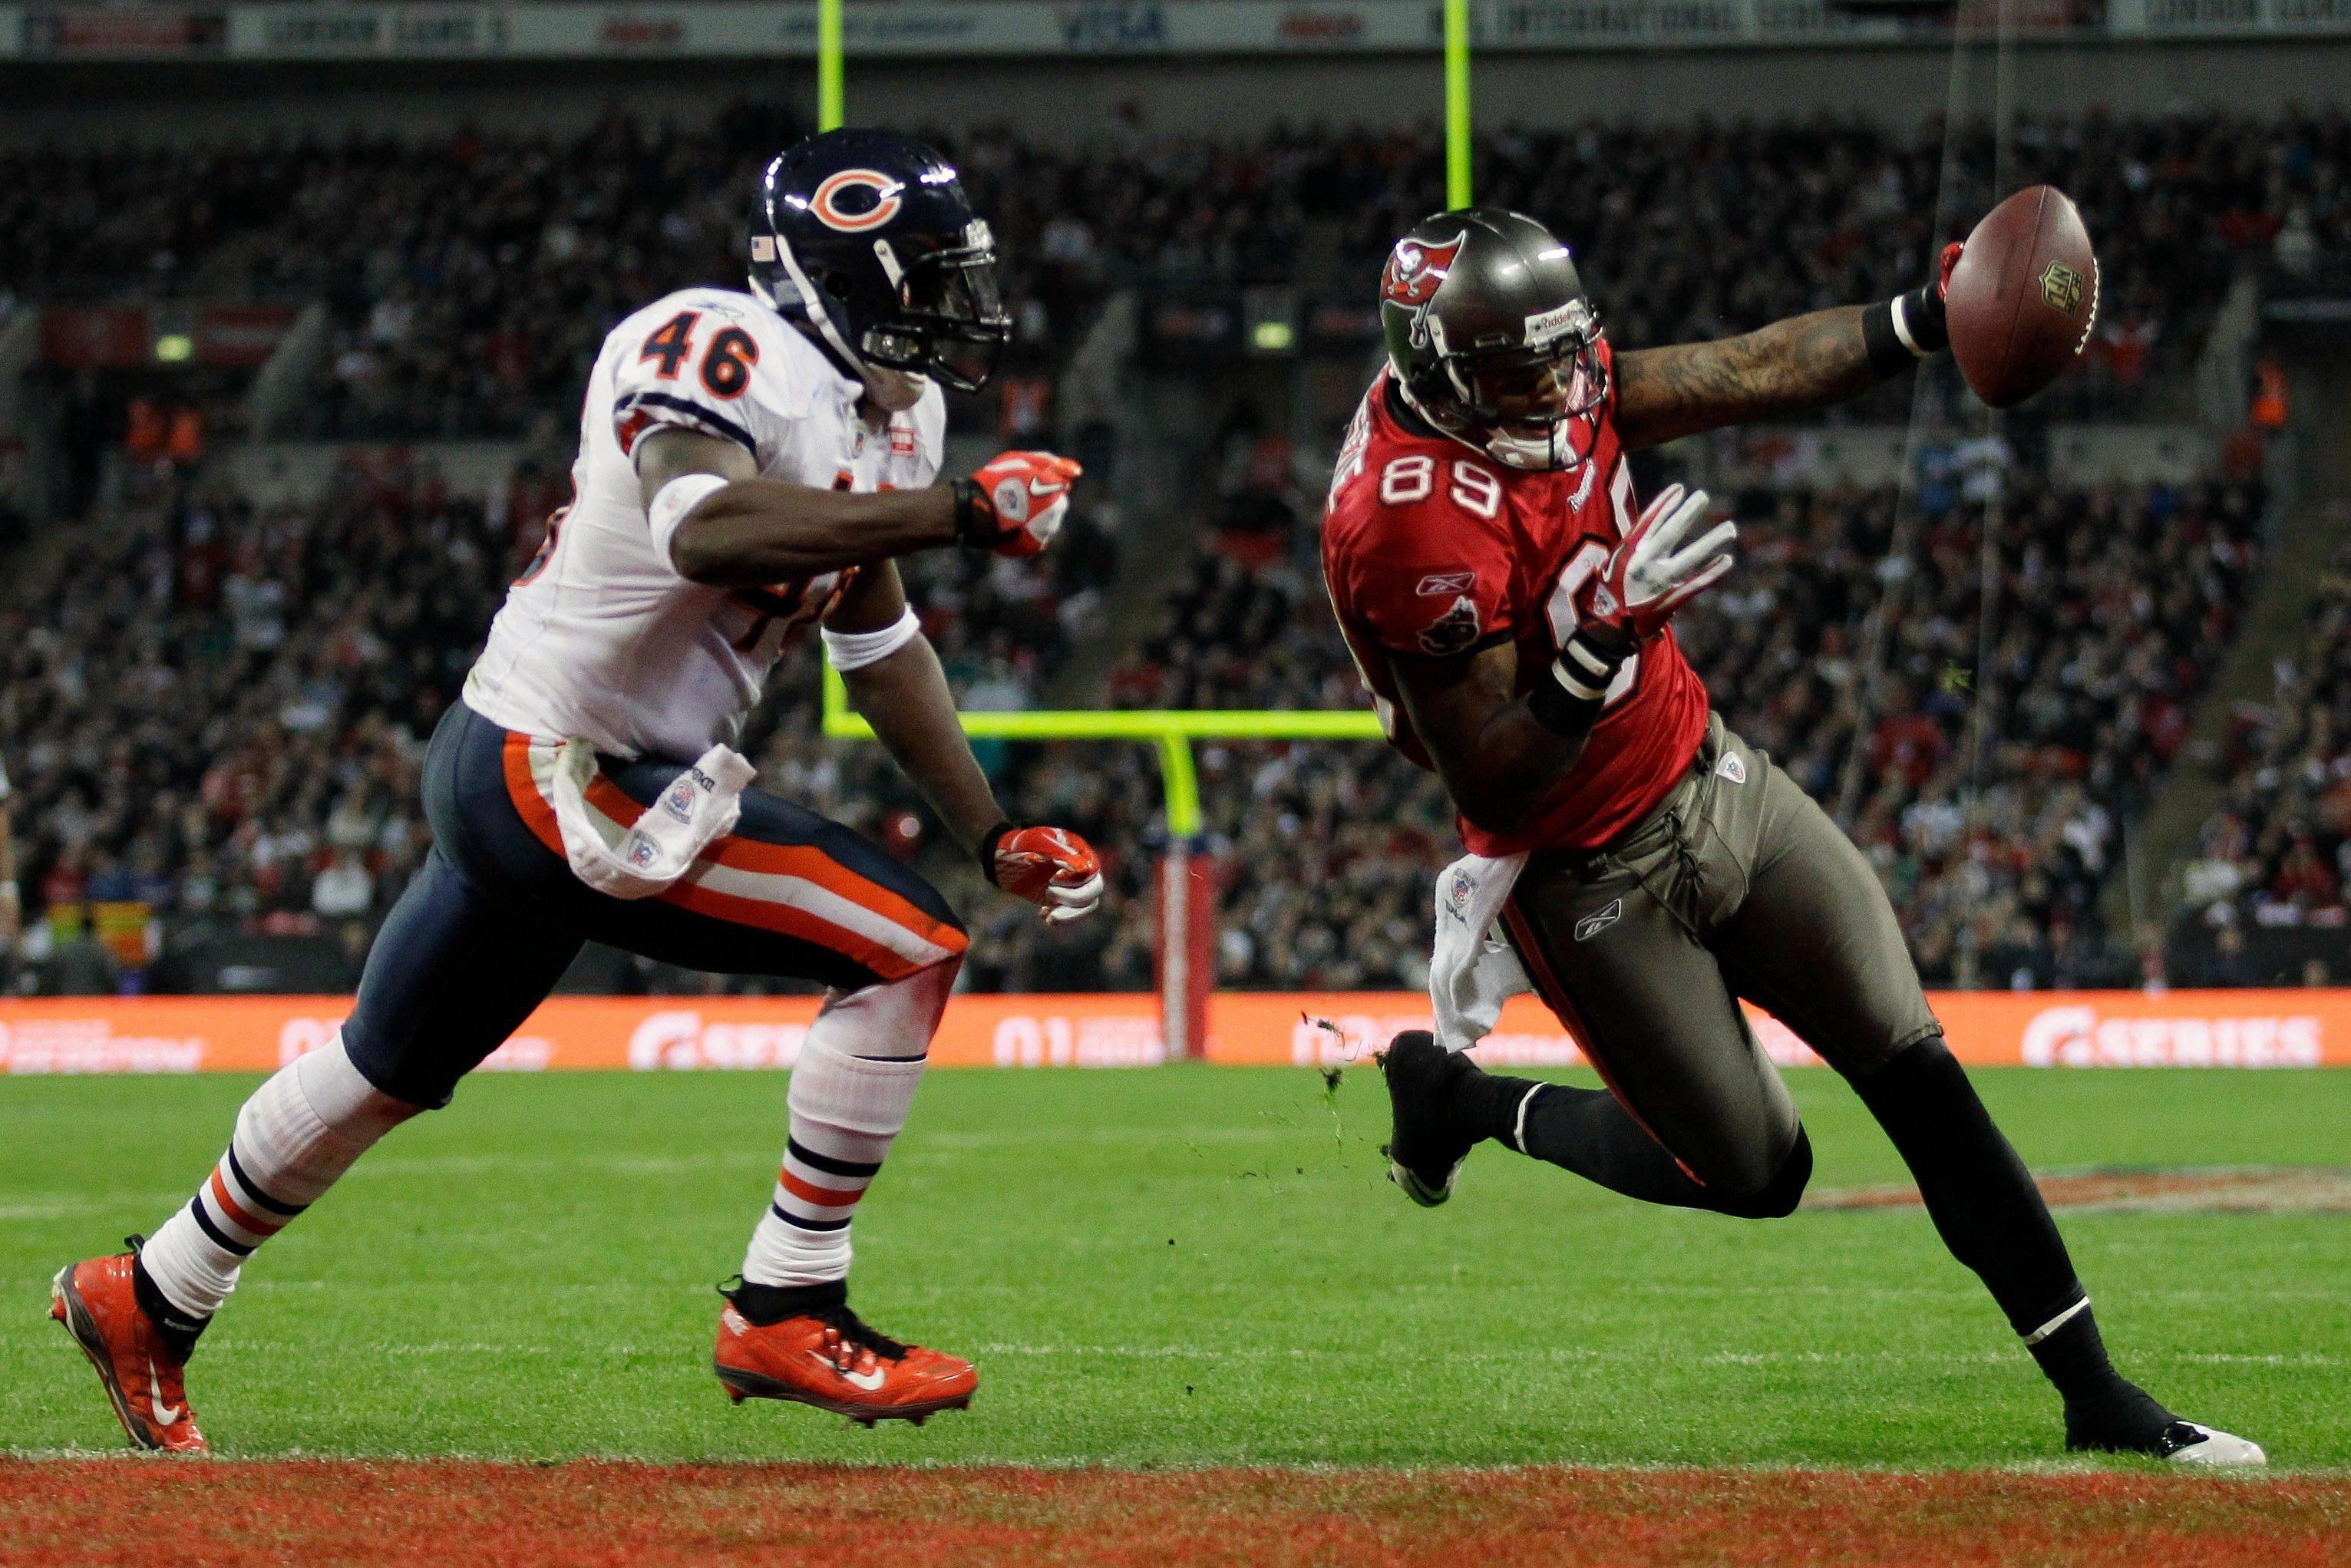 Bears strong safety Chris Harris wasn't able to stop Tampa Bay's Dezmon Briscoe from scoring on this 24-yard touchdown pass Sunday in London. The Bears released Harris on Thursday.